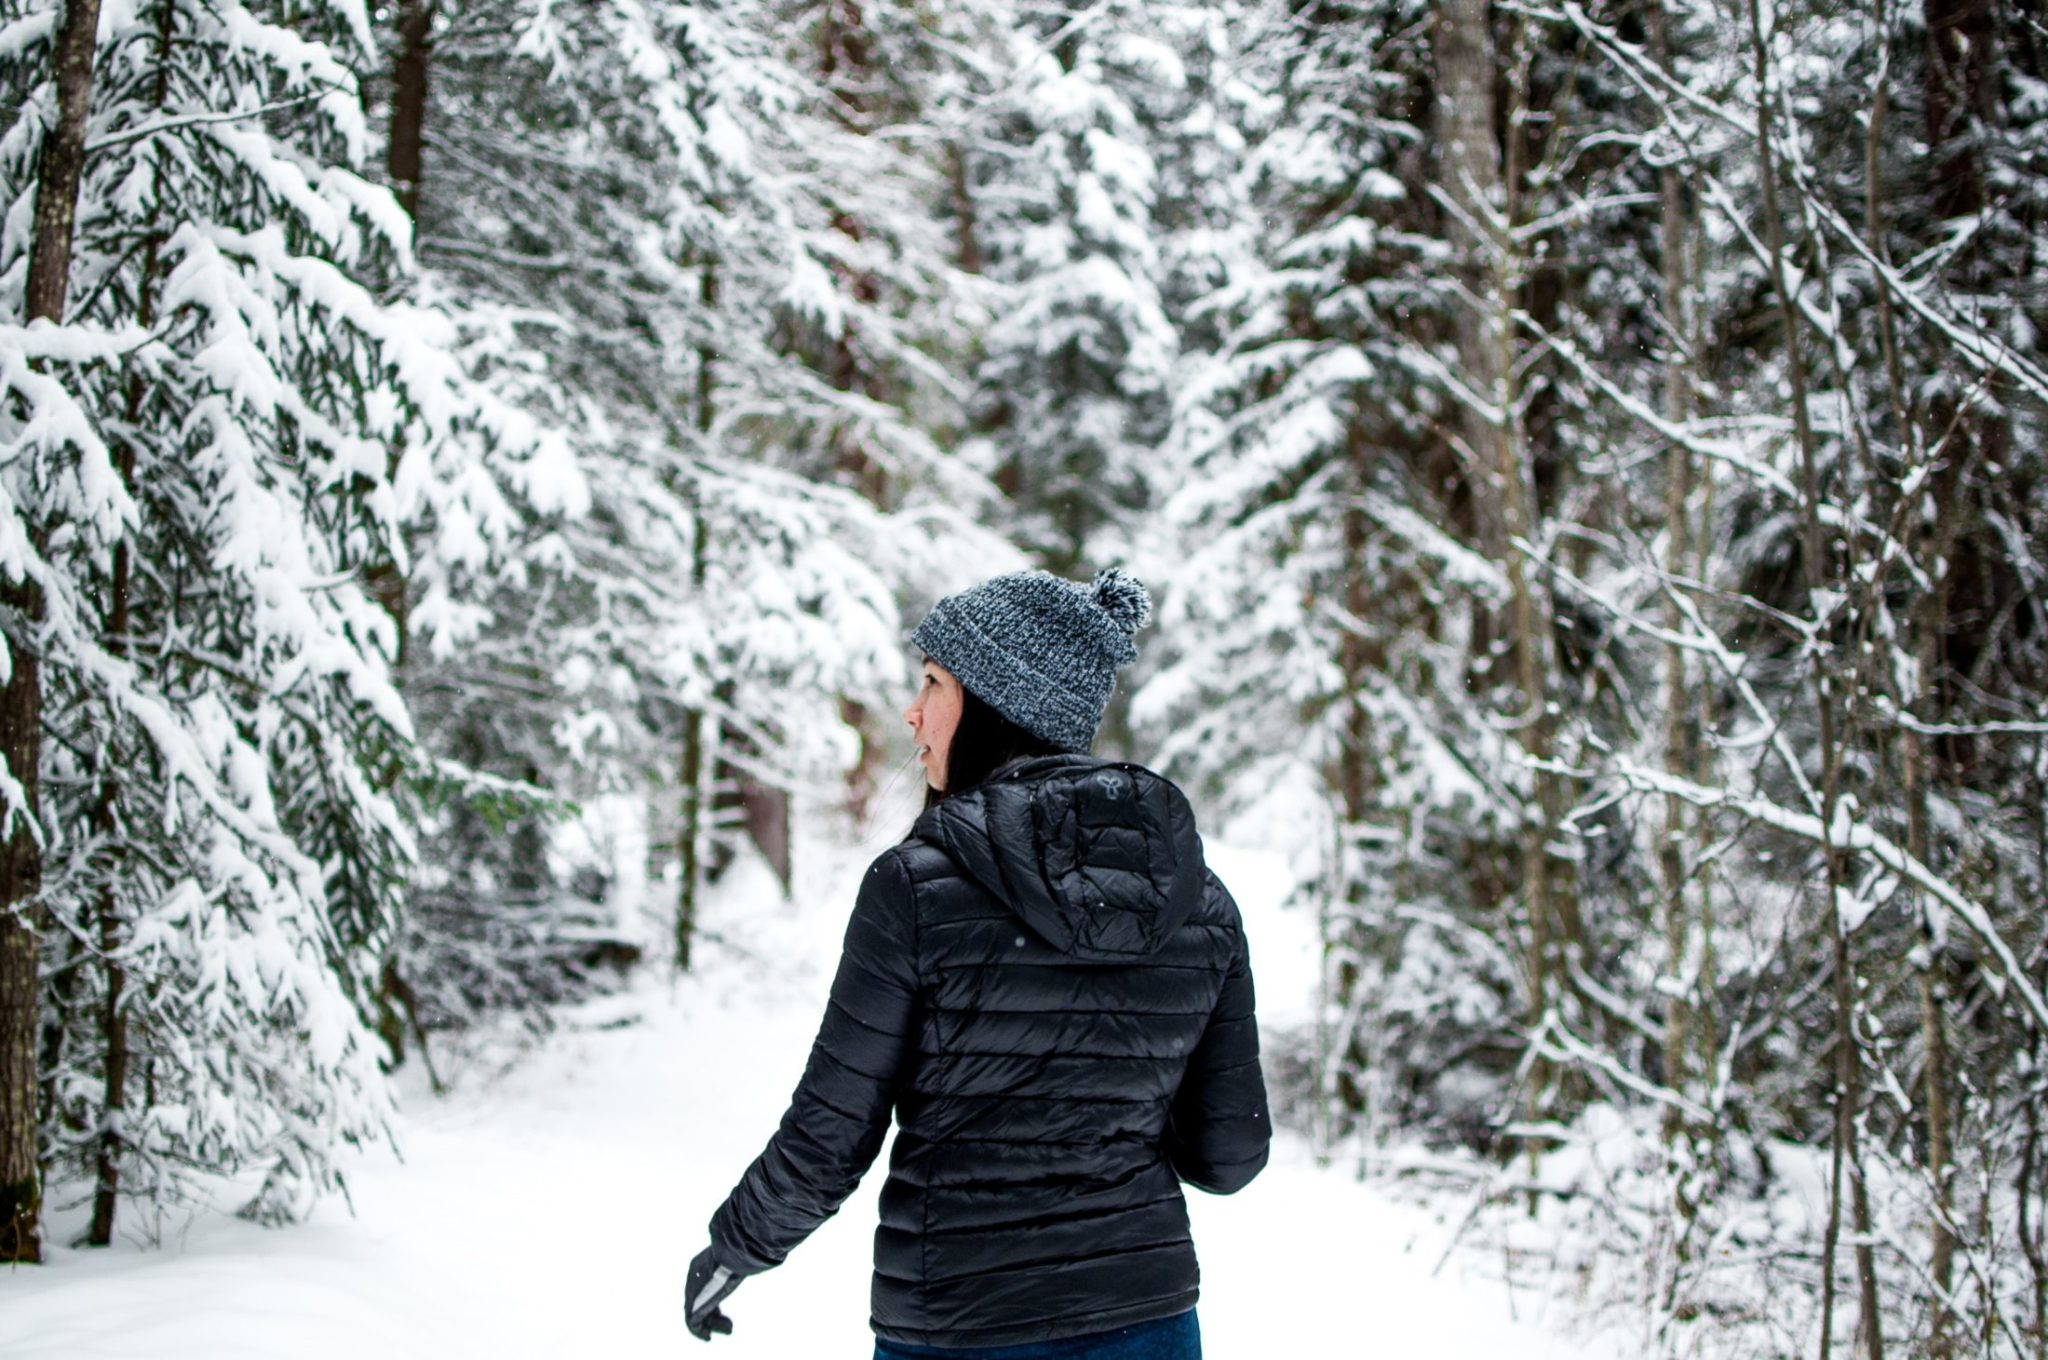 A Girl Walking Through A Snowy Forest In Winter